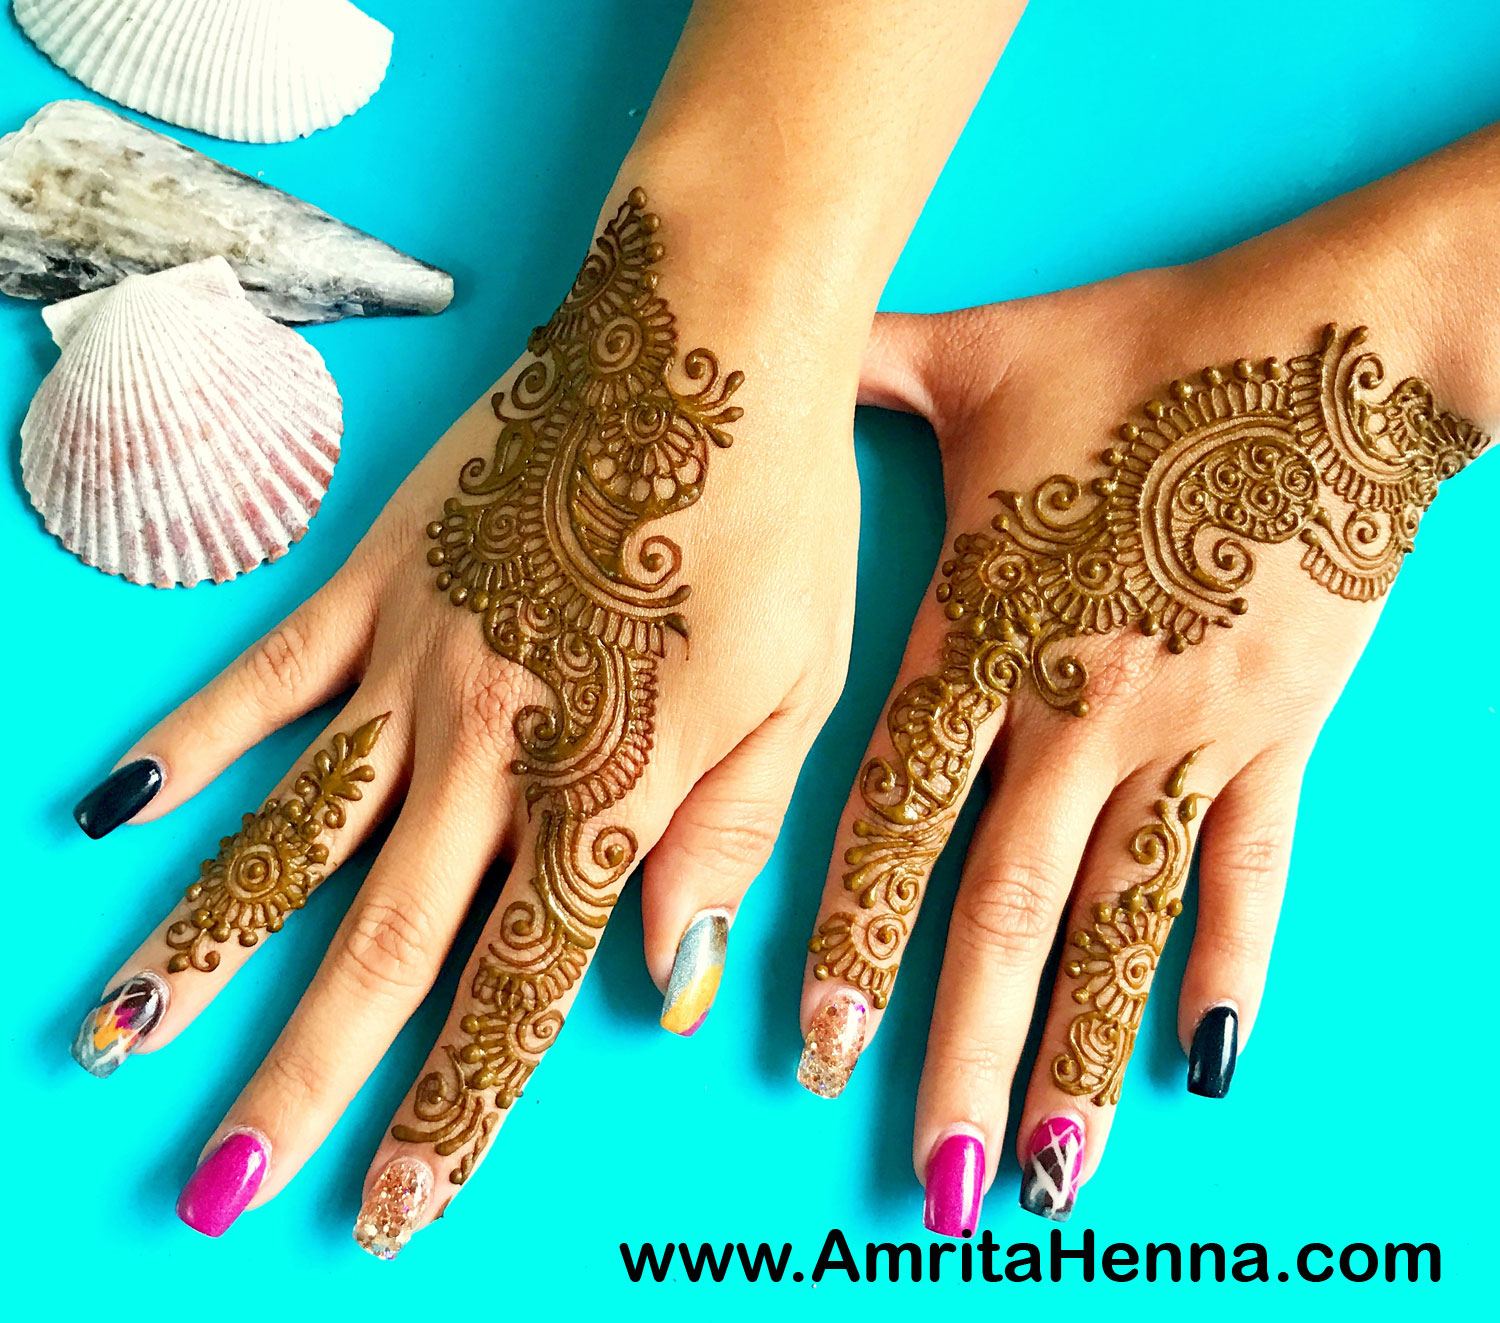 Top 10 Best Bridesmaids Henna Designs Henna Tattoo Mehndi Art By